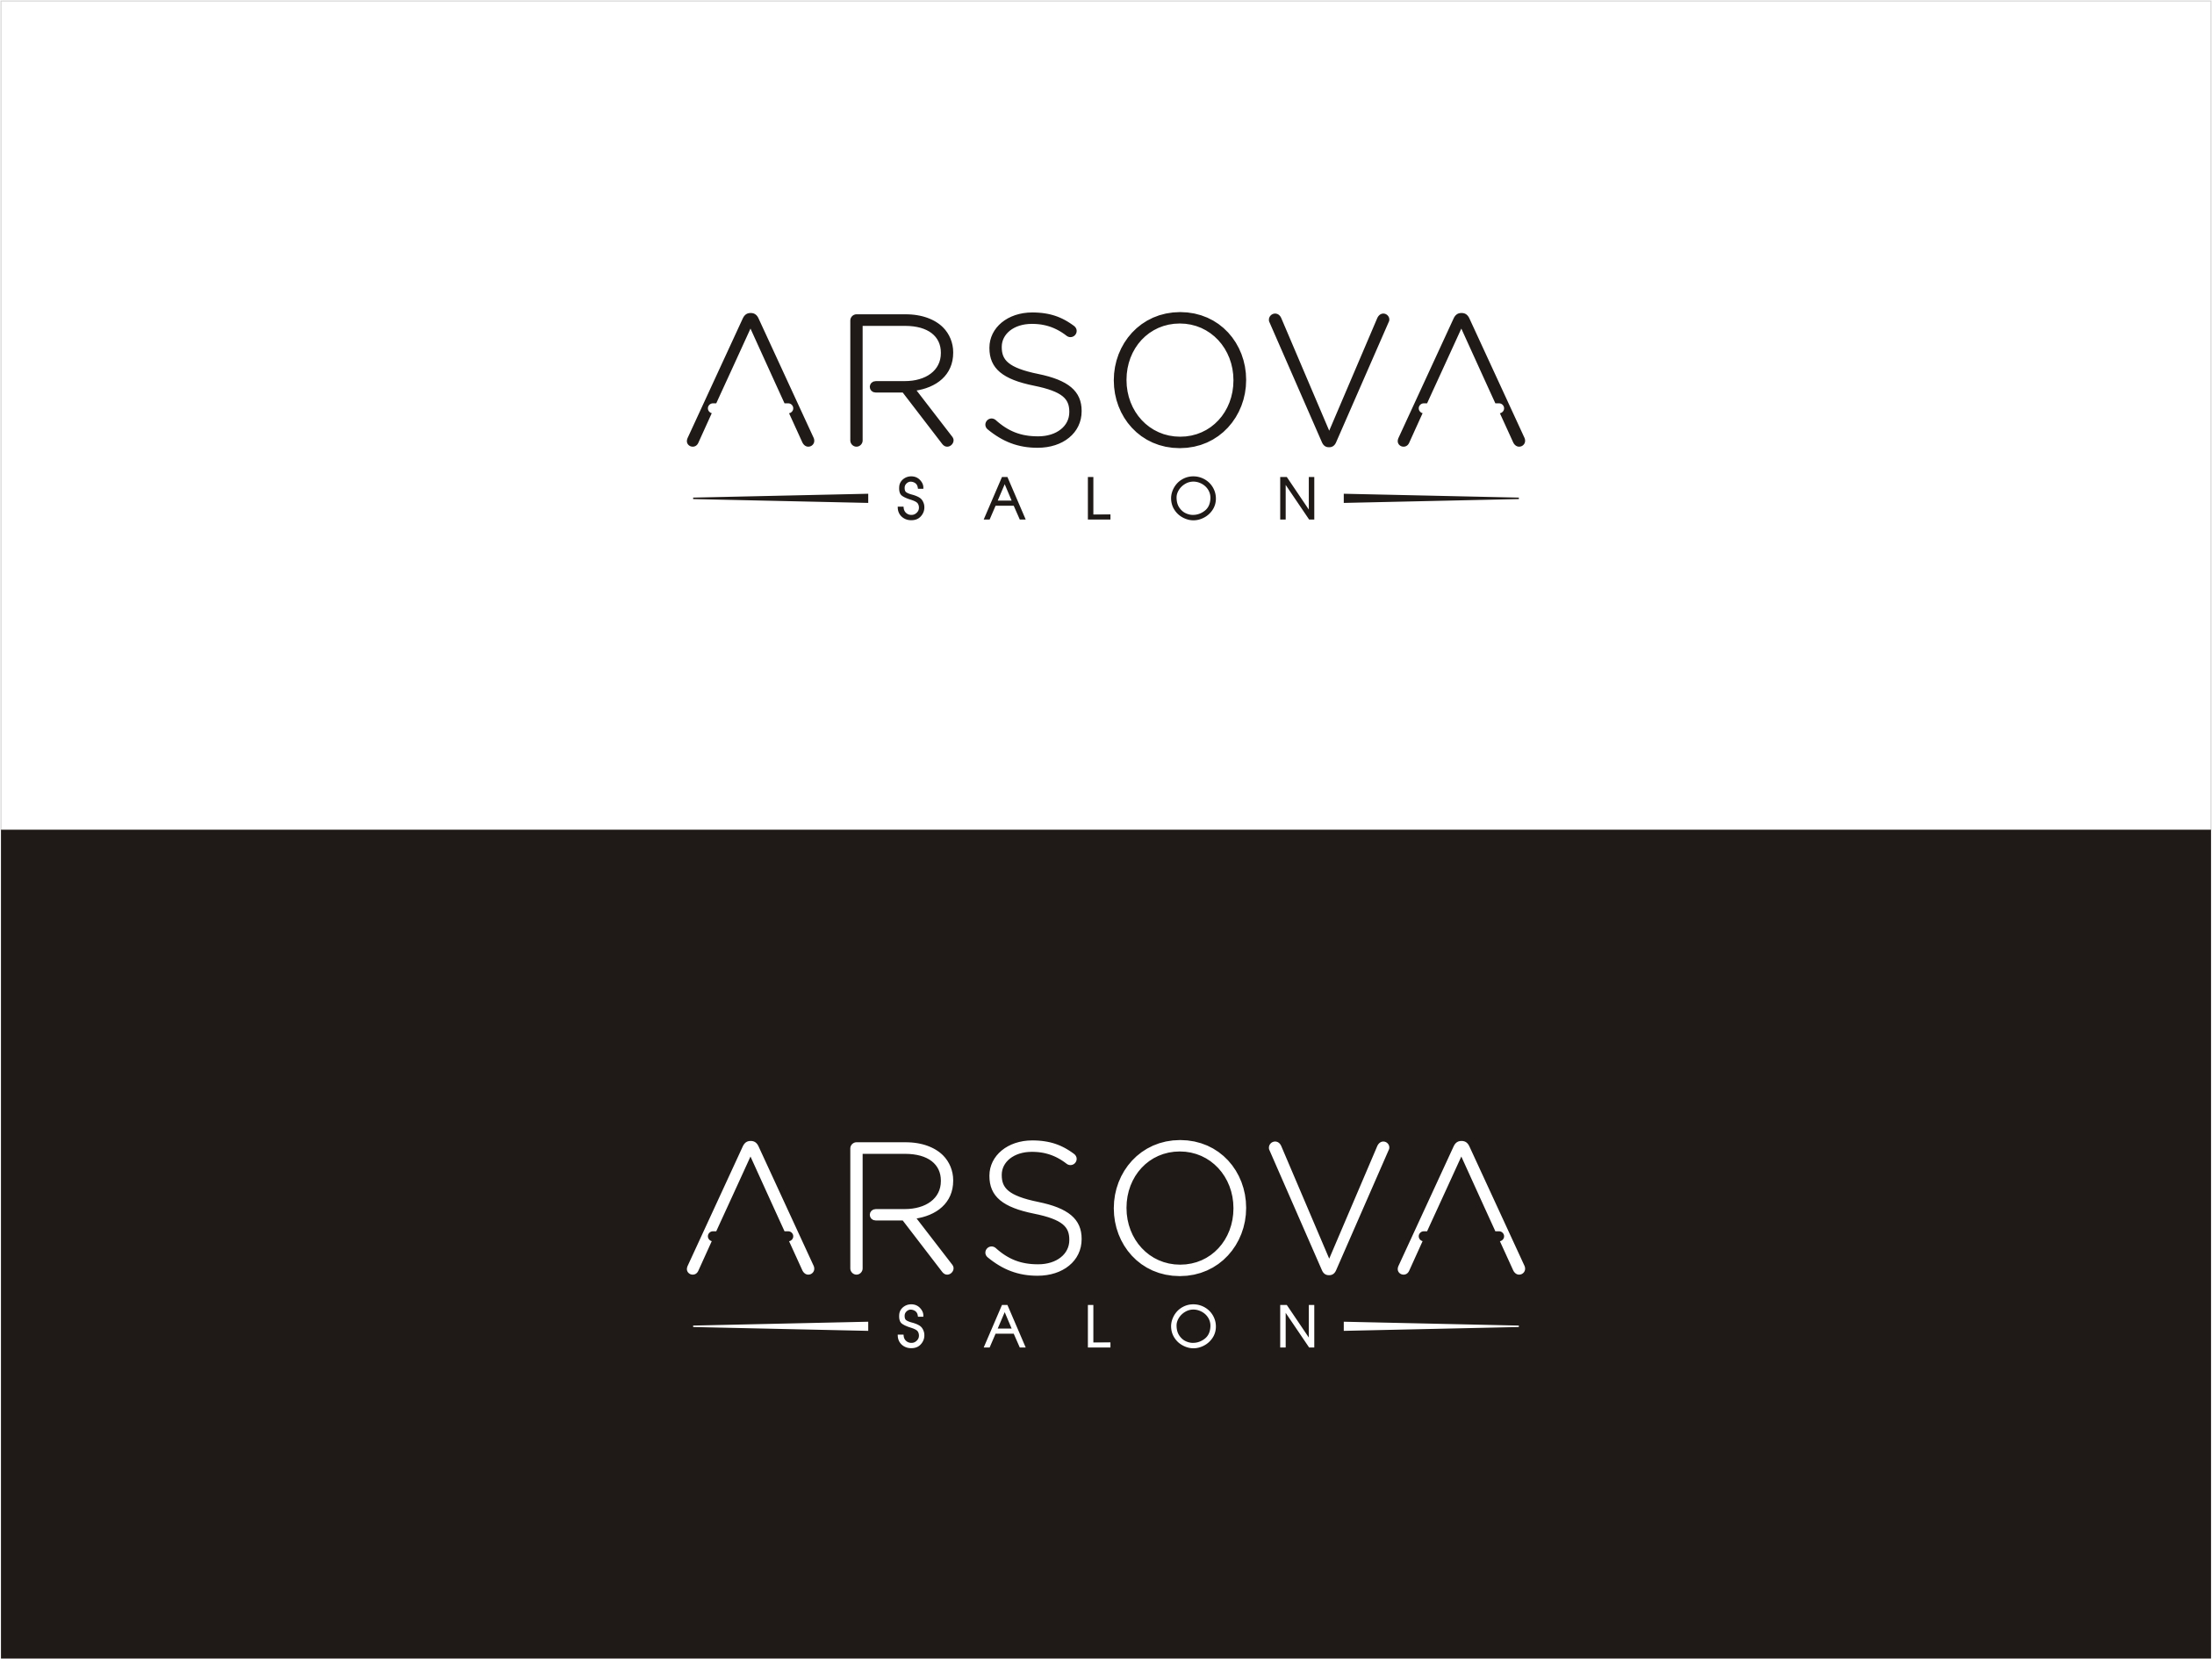 Arsova Salon - Logo